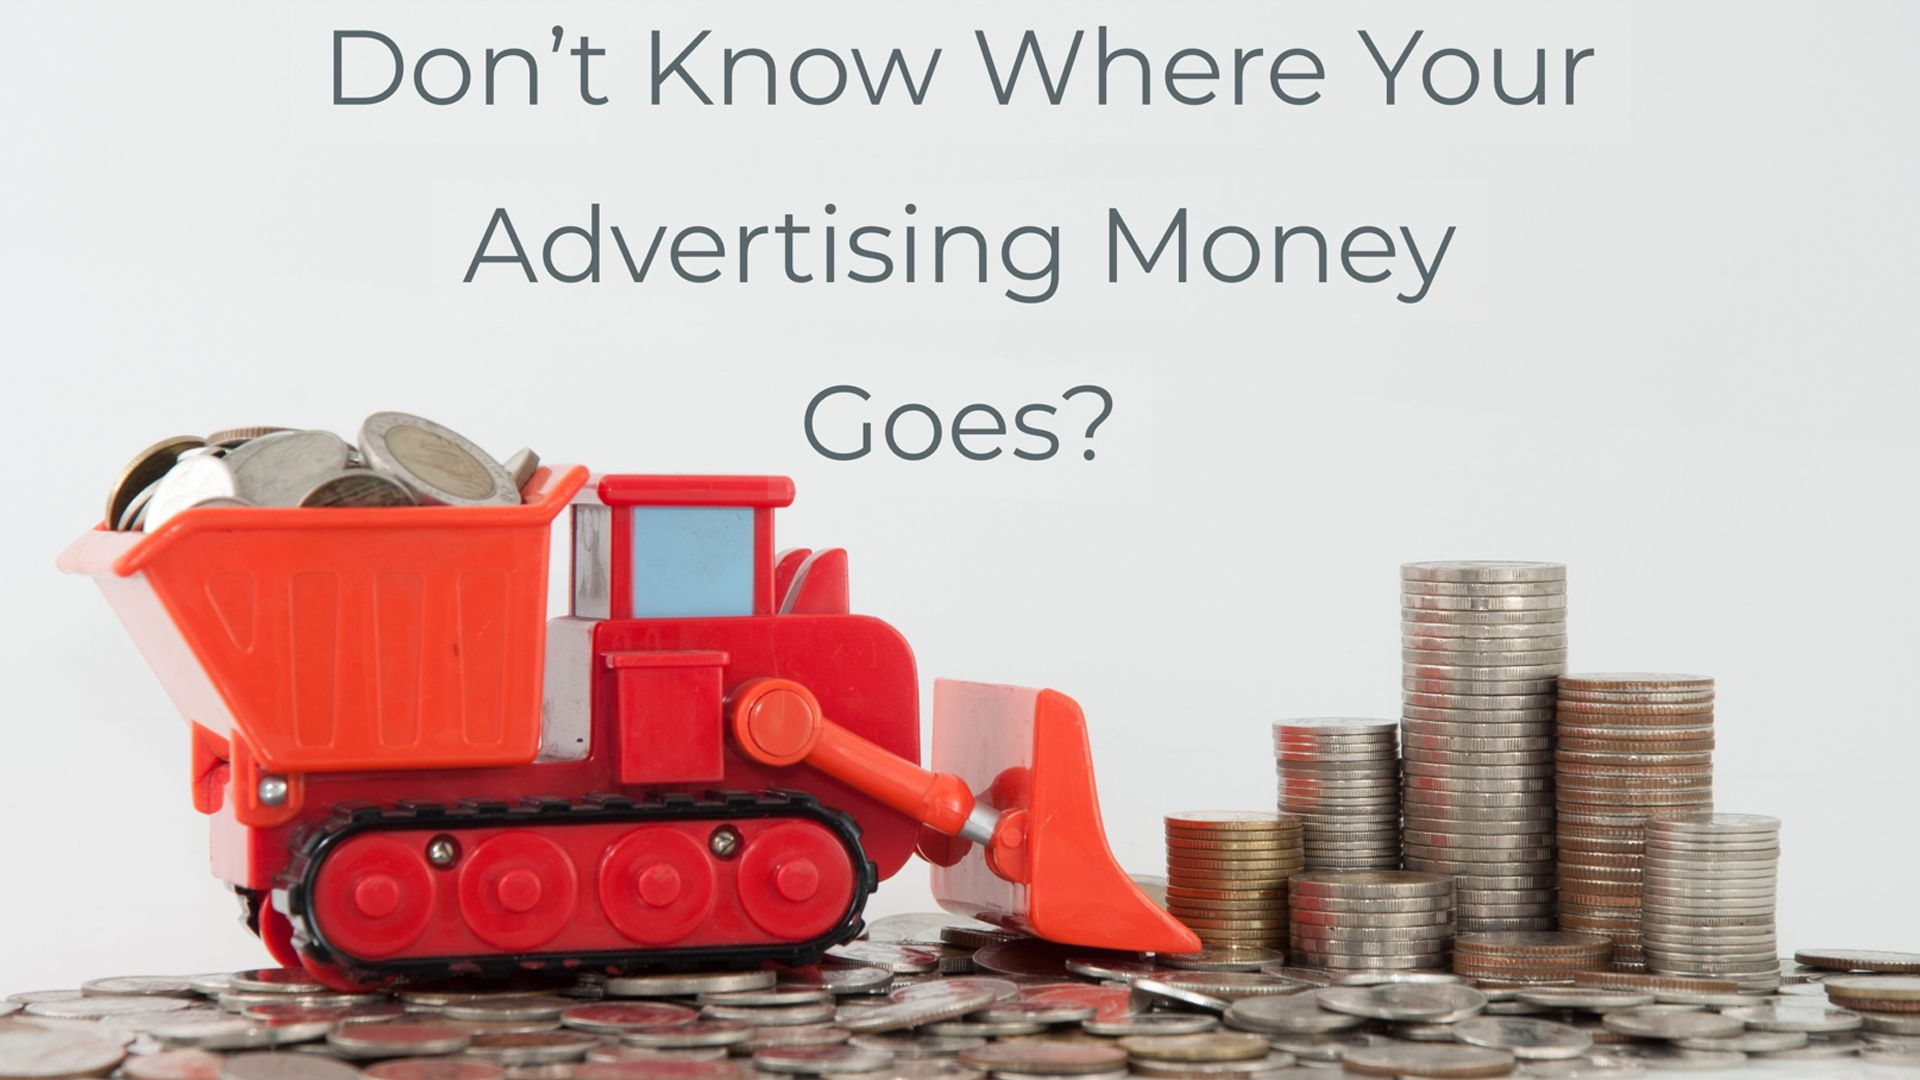 Don't Know Where Your Advertising Money Goes?